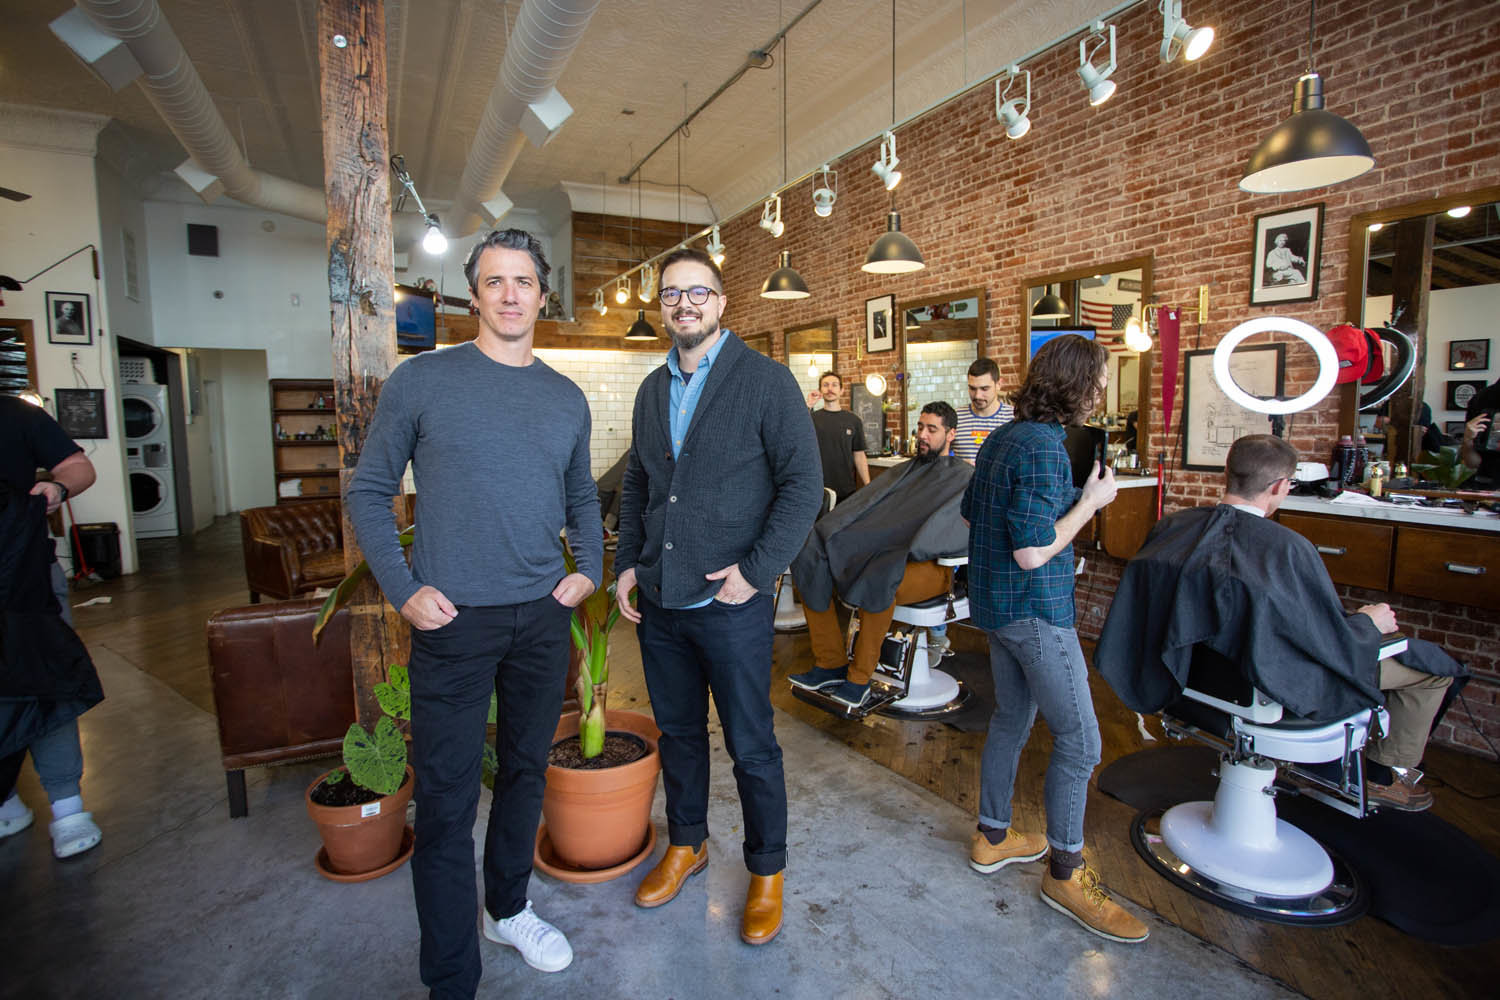 IN THE DETAILS: Owners Paul Catlett, left, and Thad Forrester say store No. 11 will open this year in a city to be determined.